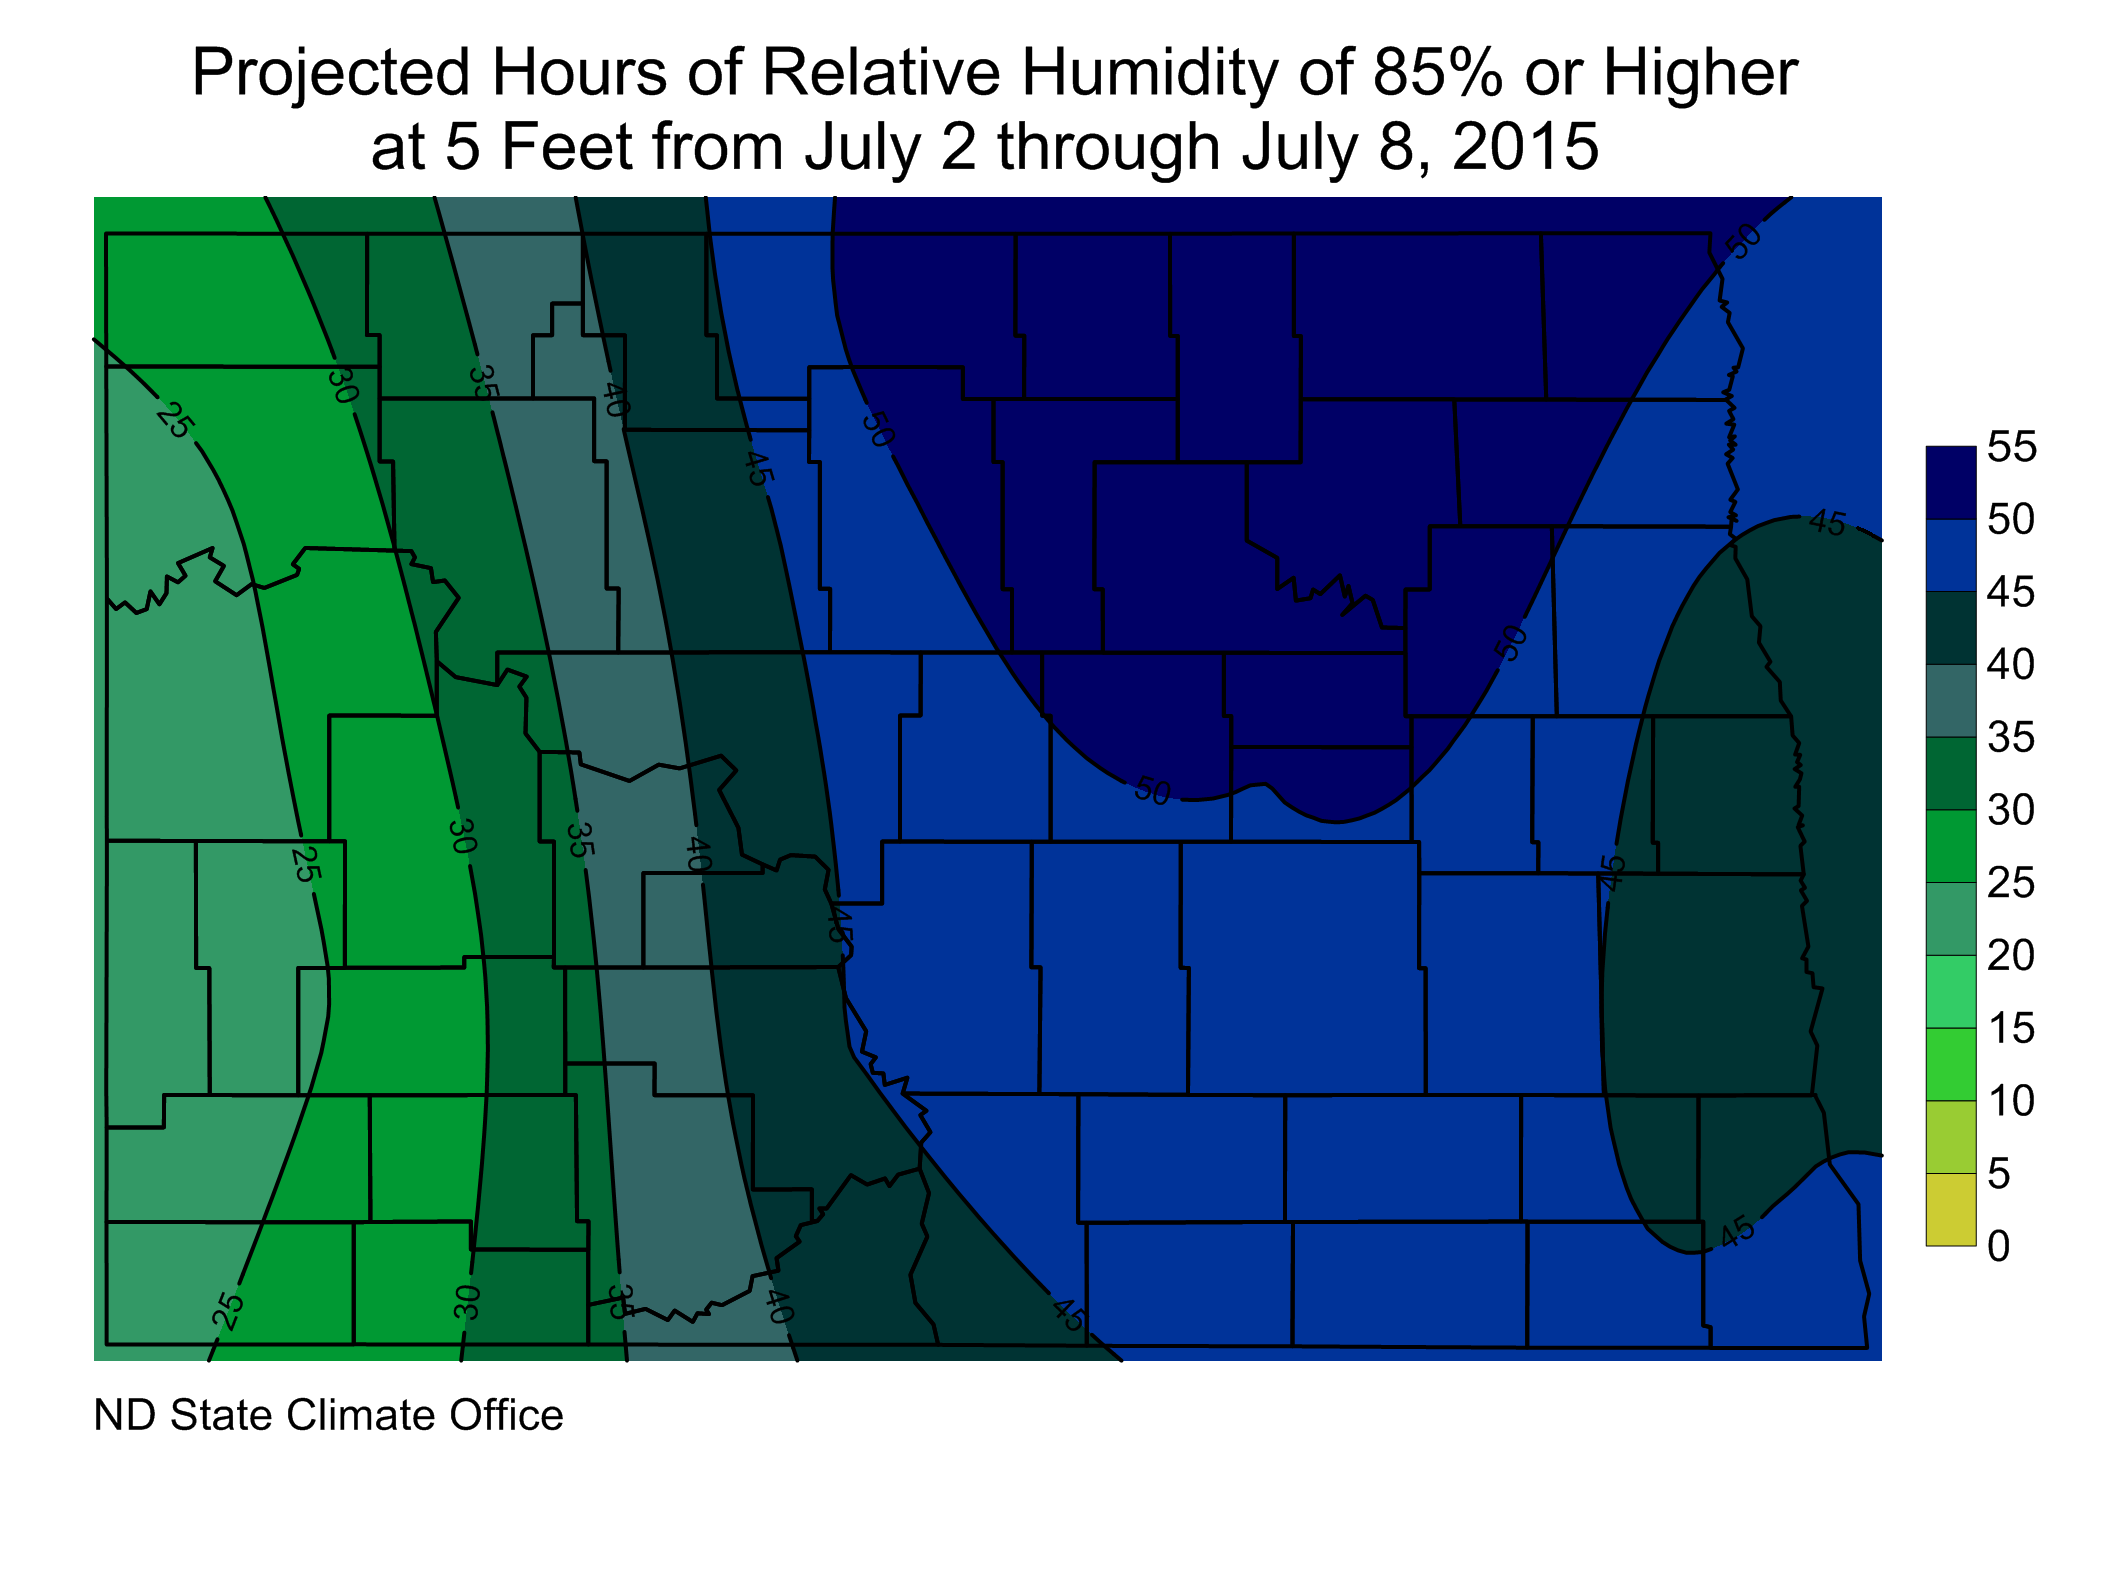 Figure 2.  Projected Hours of RH of 85% or Higher